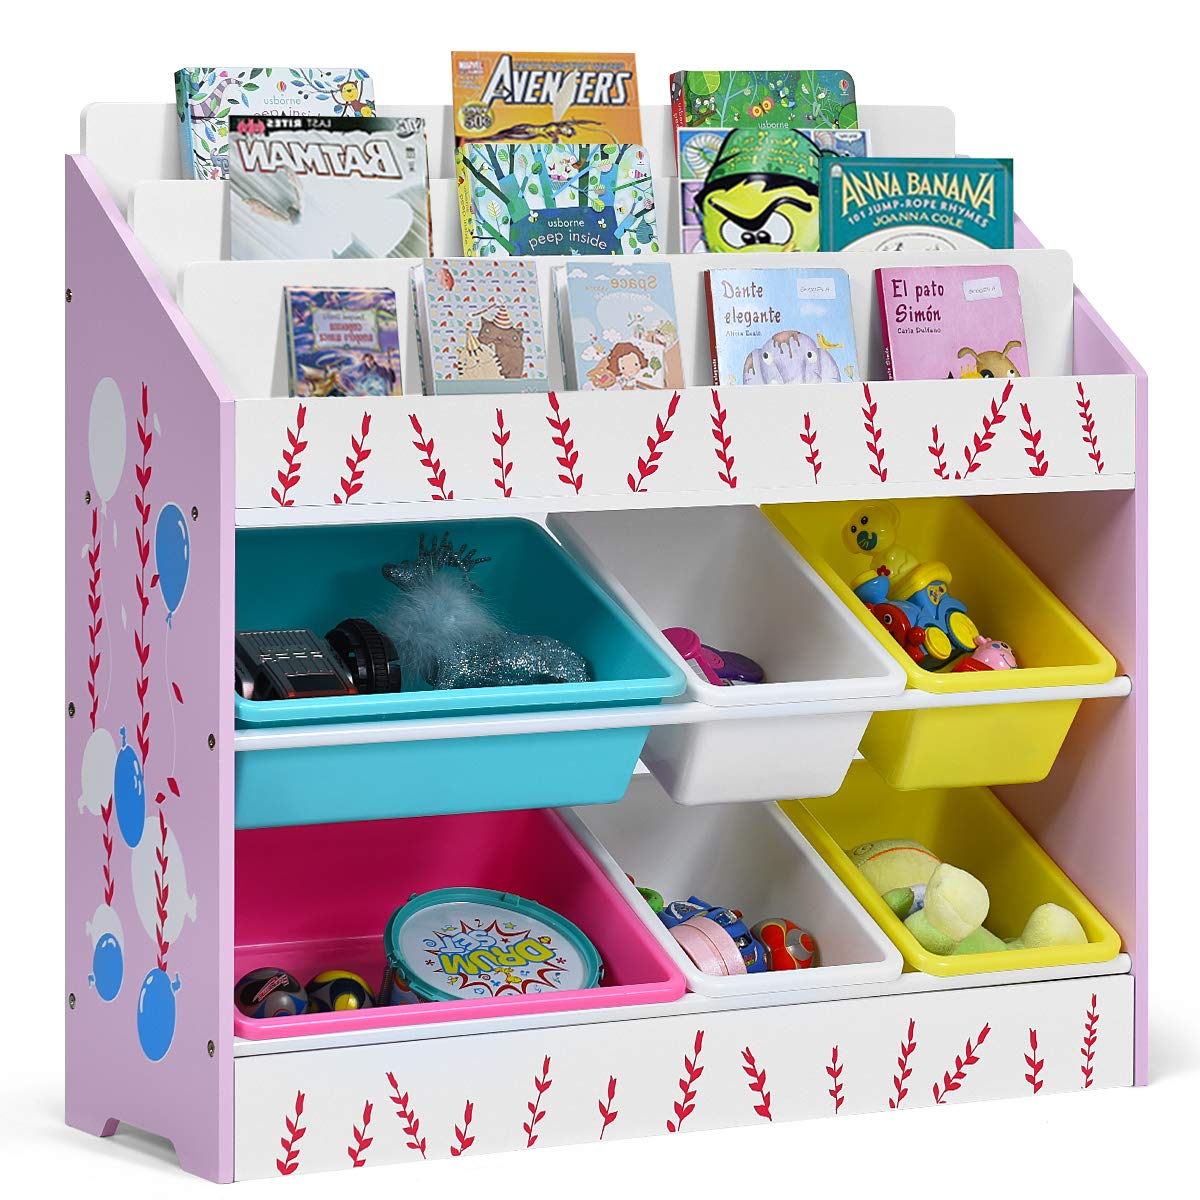 Costzon Kids Toy Storage Organizer & Bookshelf, Children Bookshelf with 6 Multiple Color Removable Bins Shelf Drawer & 3 Shelf Sleeves, Ideal for Kids Room, Playroom and Class Room (Pink) by Costzon